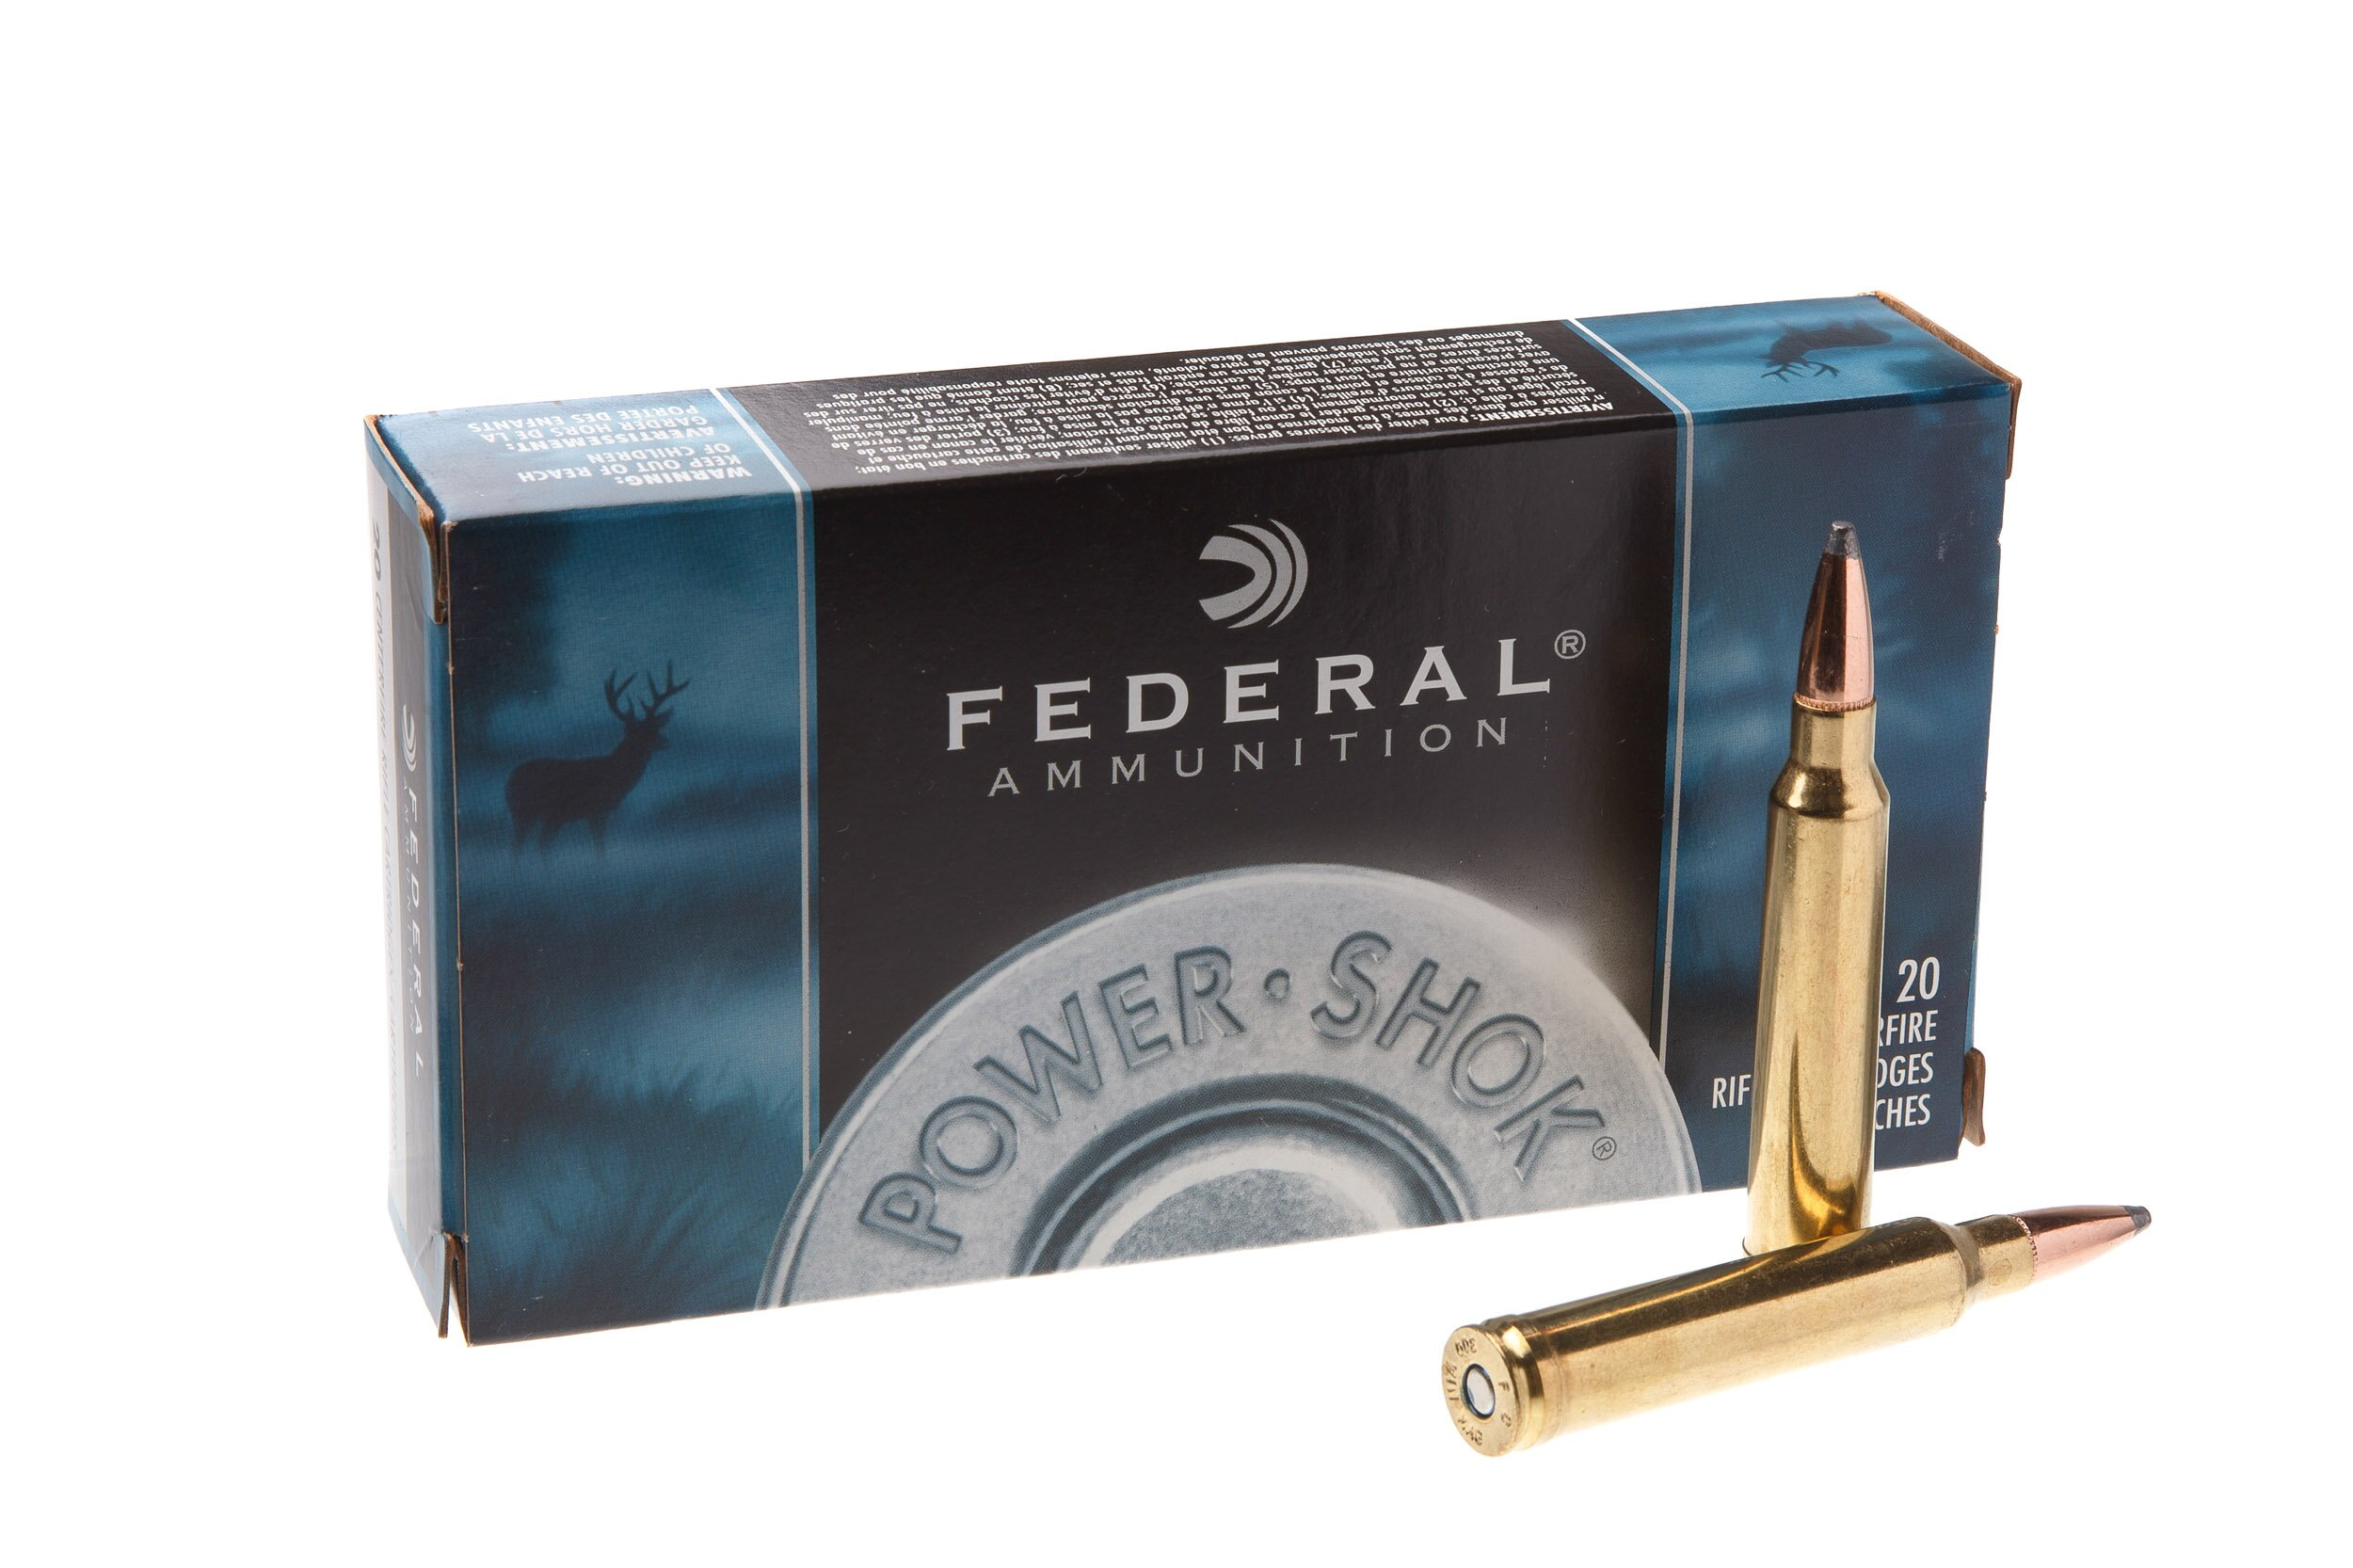 Патрон нарезной Federal Power shok 308WIN 180GR (11.7гр) SP 308Win